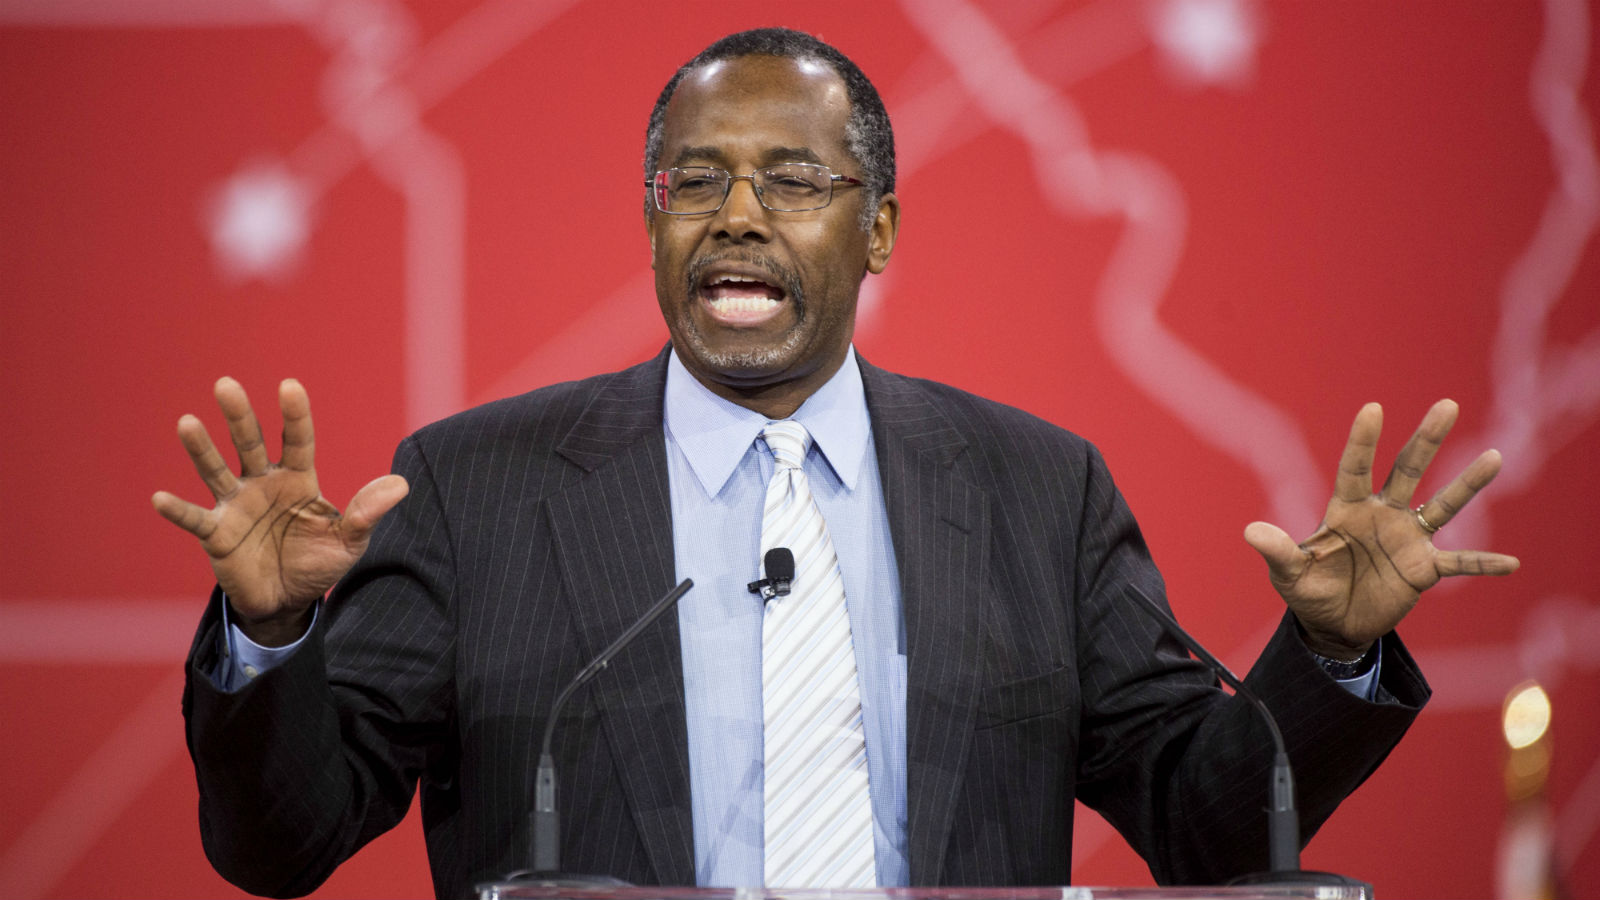 Ben Carson Removes Anti-Discrimination Language From HUD Mission Statement